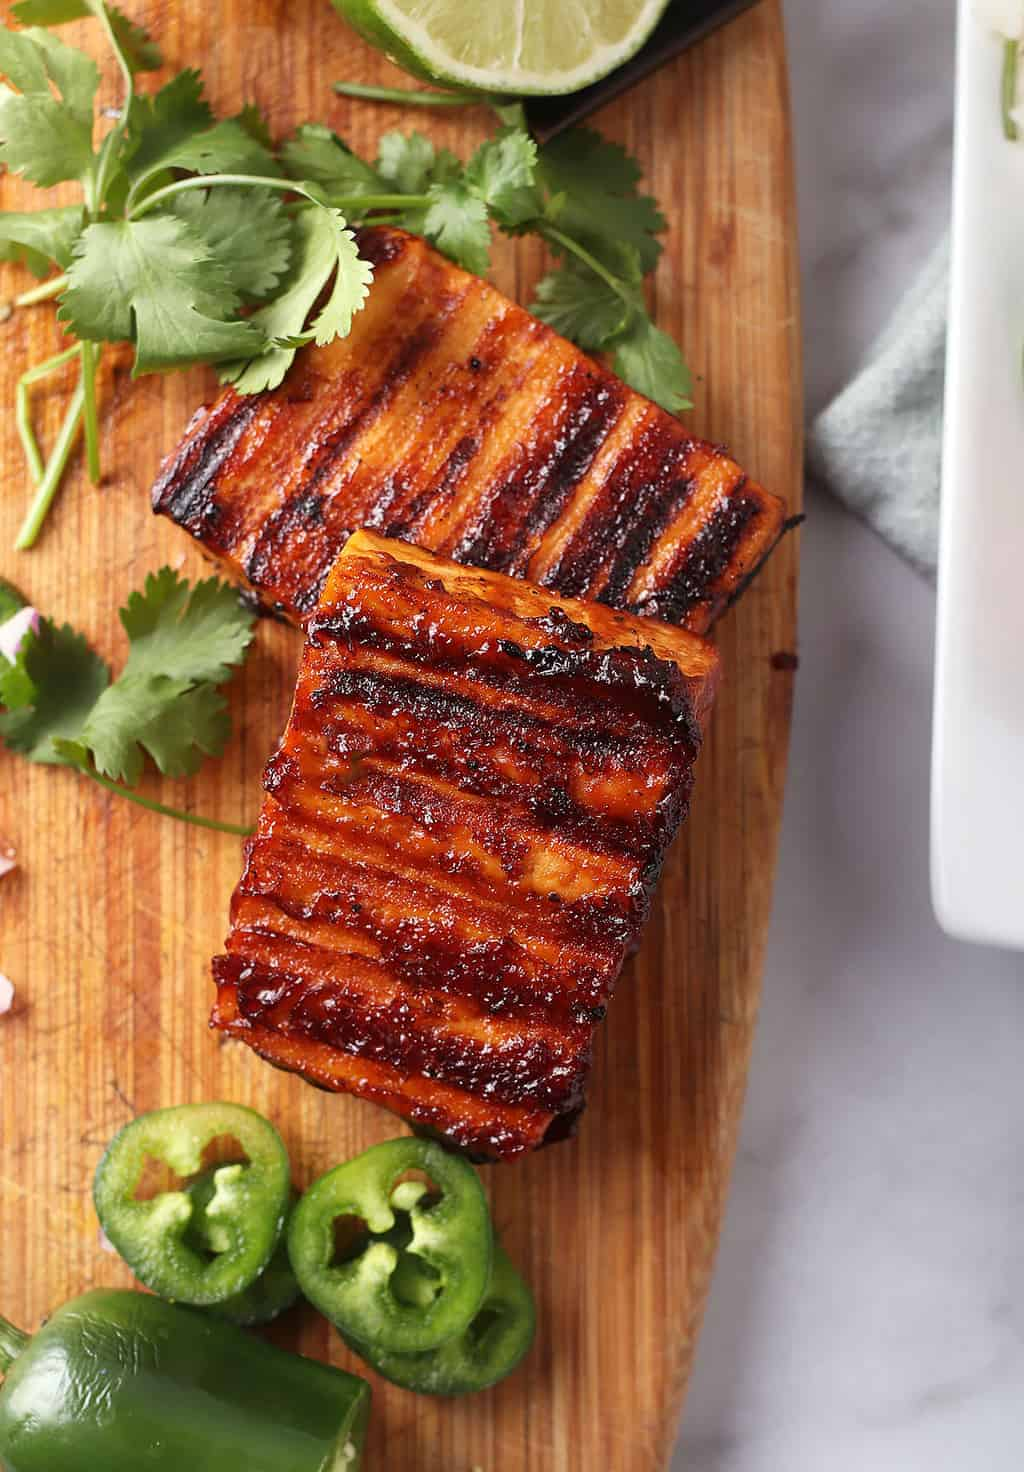 Grilled tofu steaks on wooden cutting board